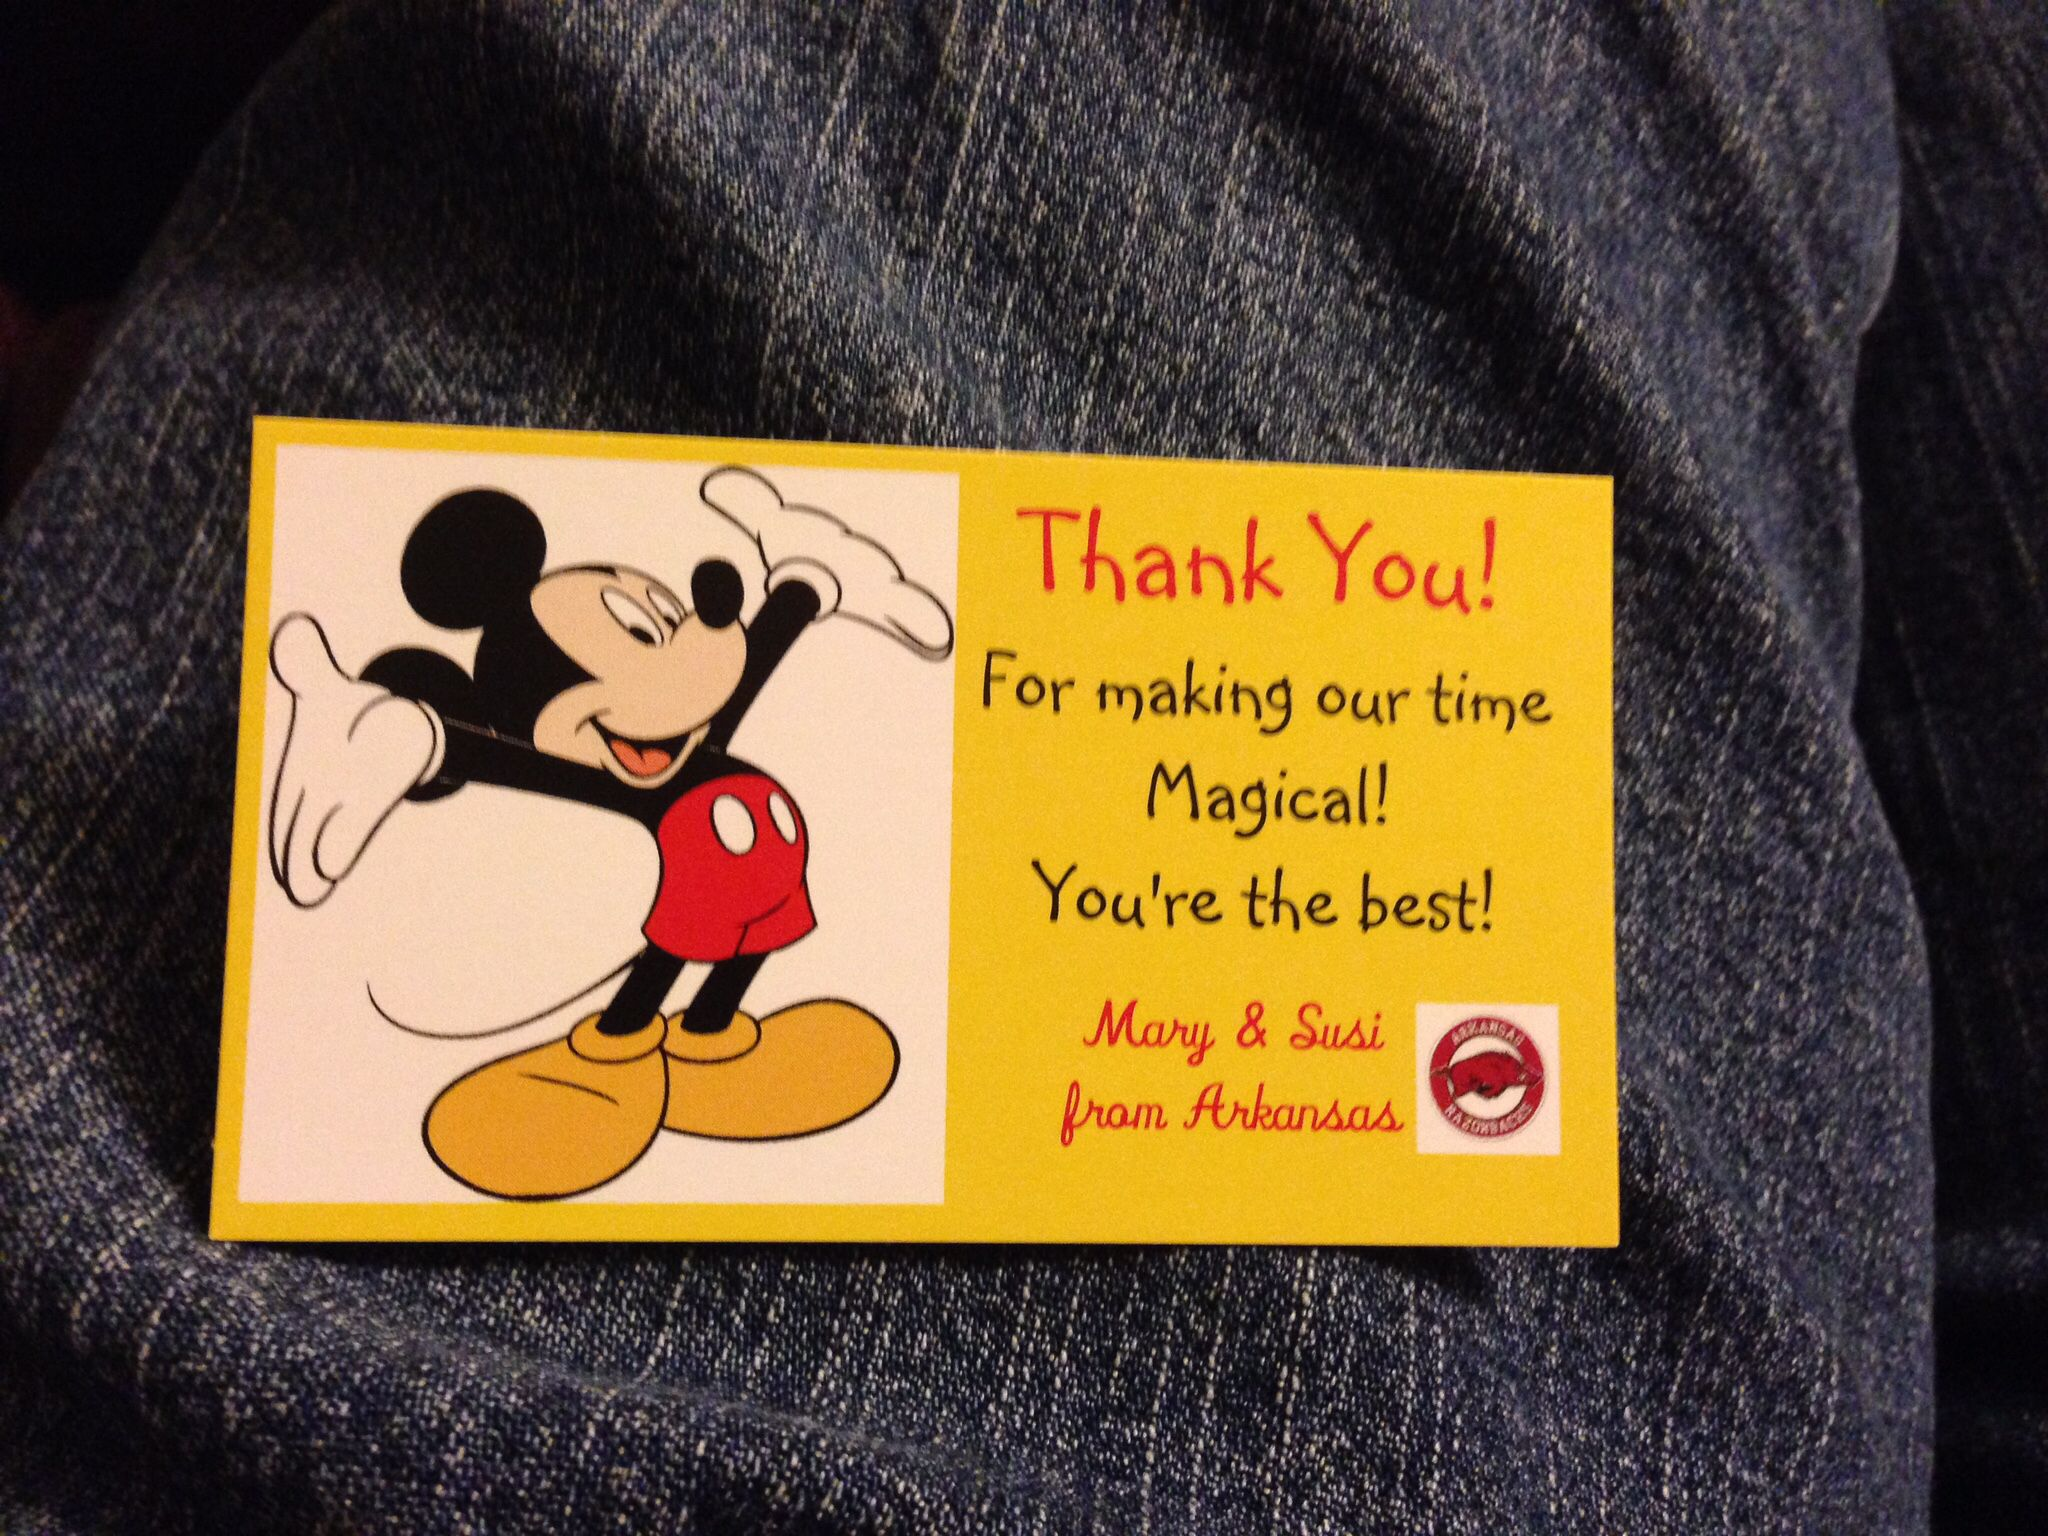 wedding thank you note for gift of money%0A Thank you card for cast members